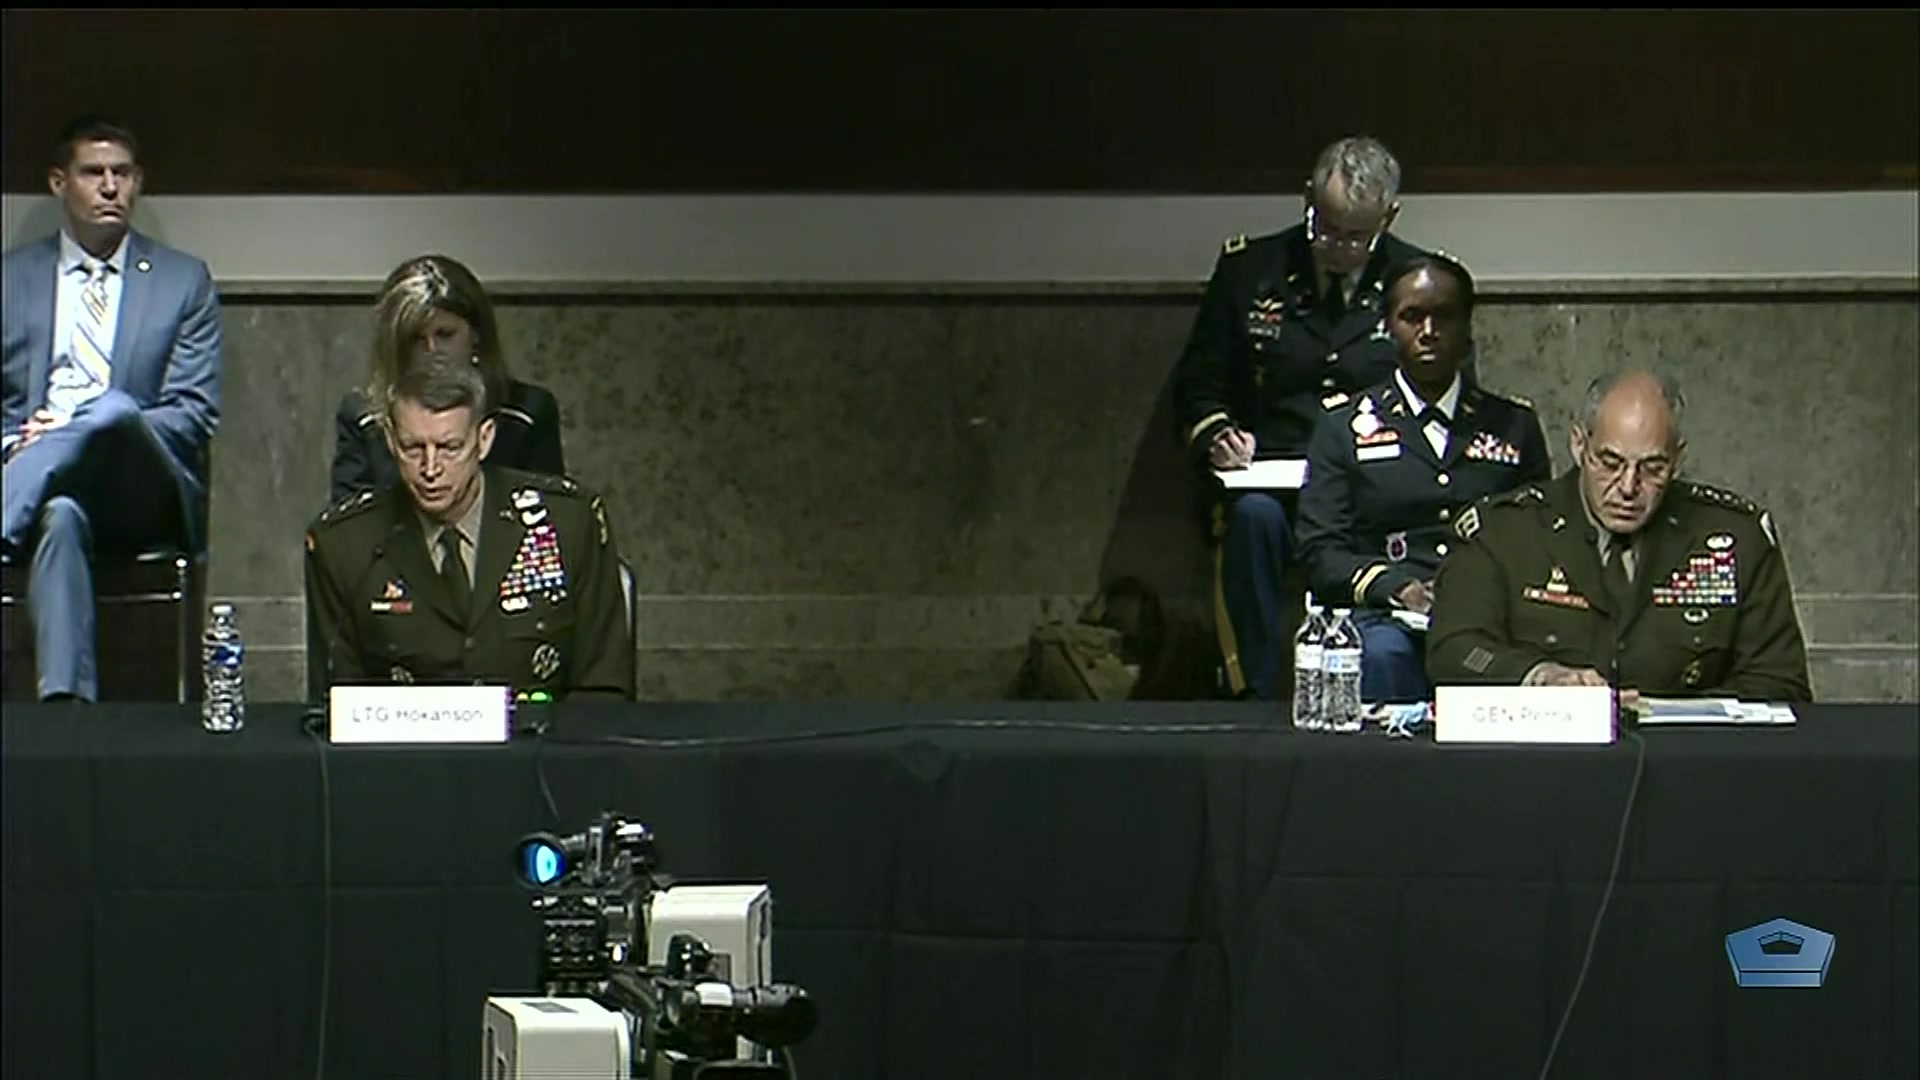 Service members sit at a table, with other troops and civilians behind them.